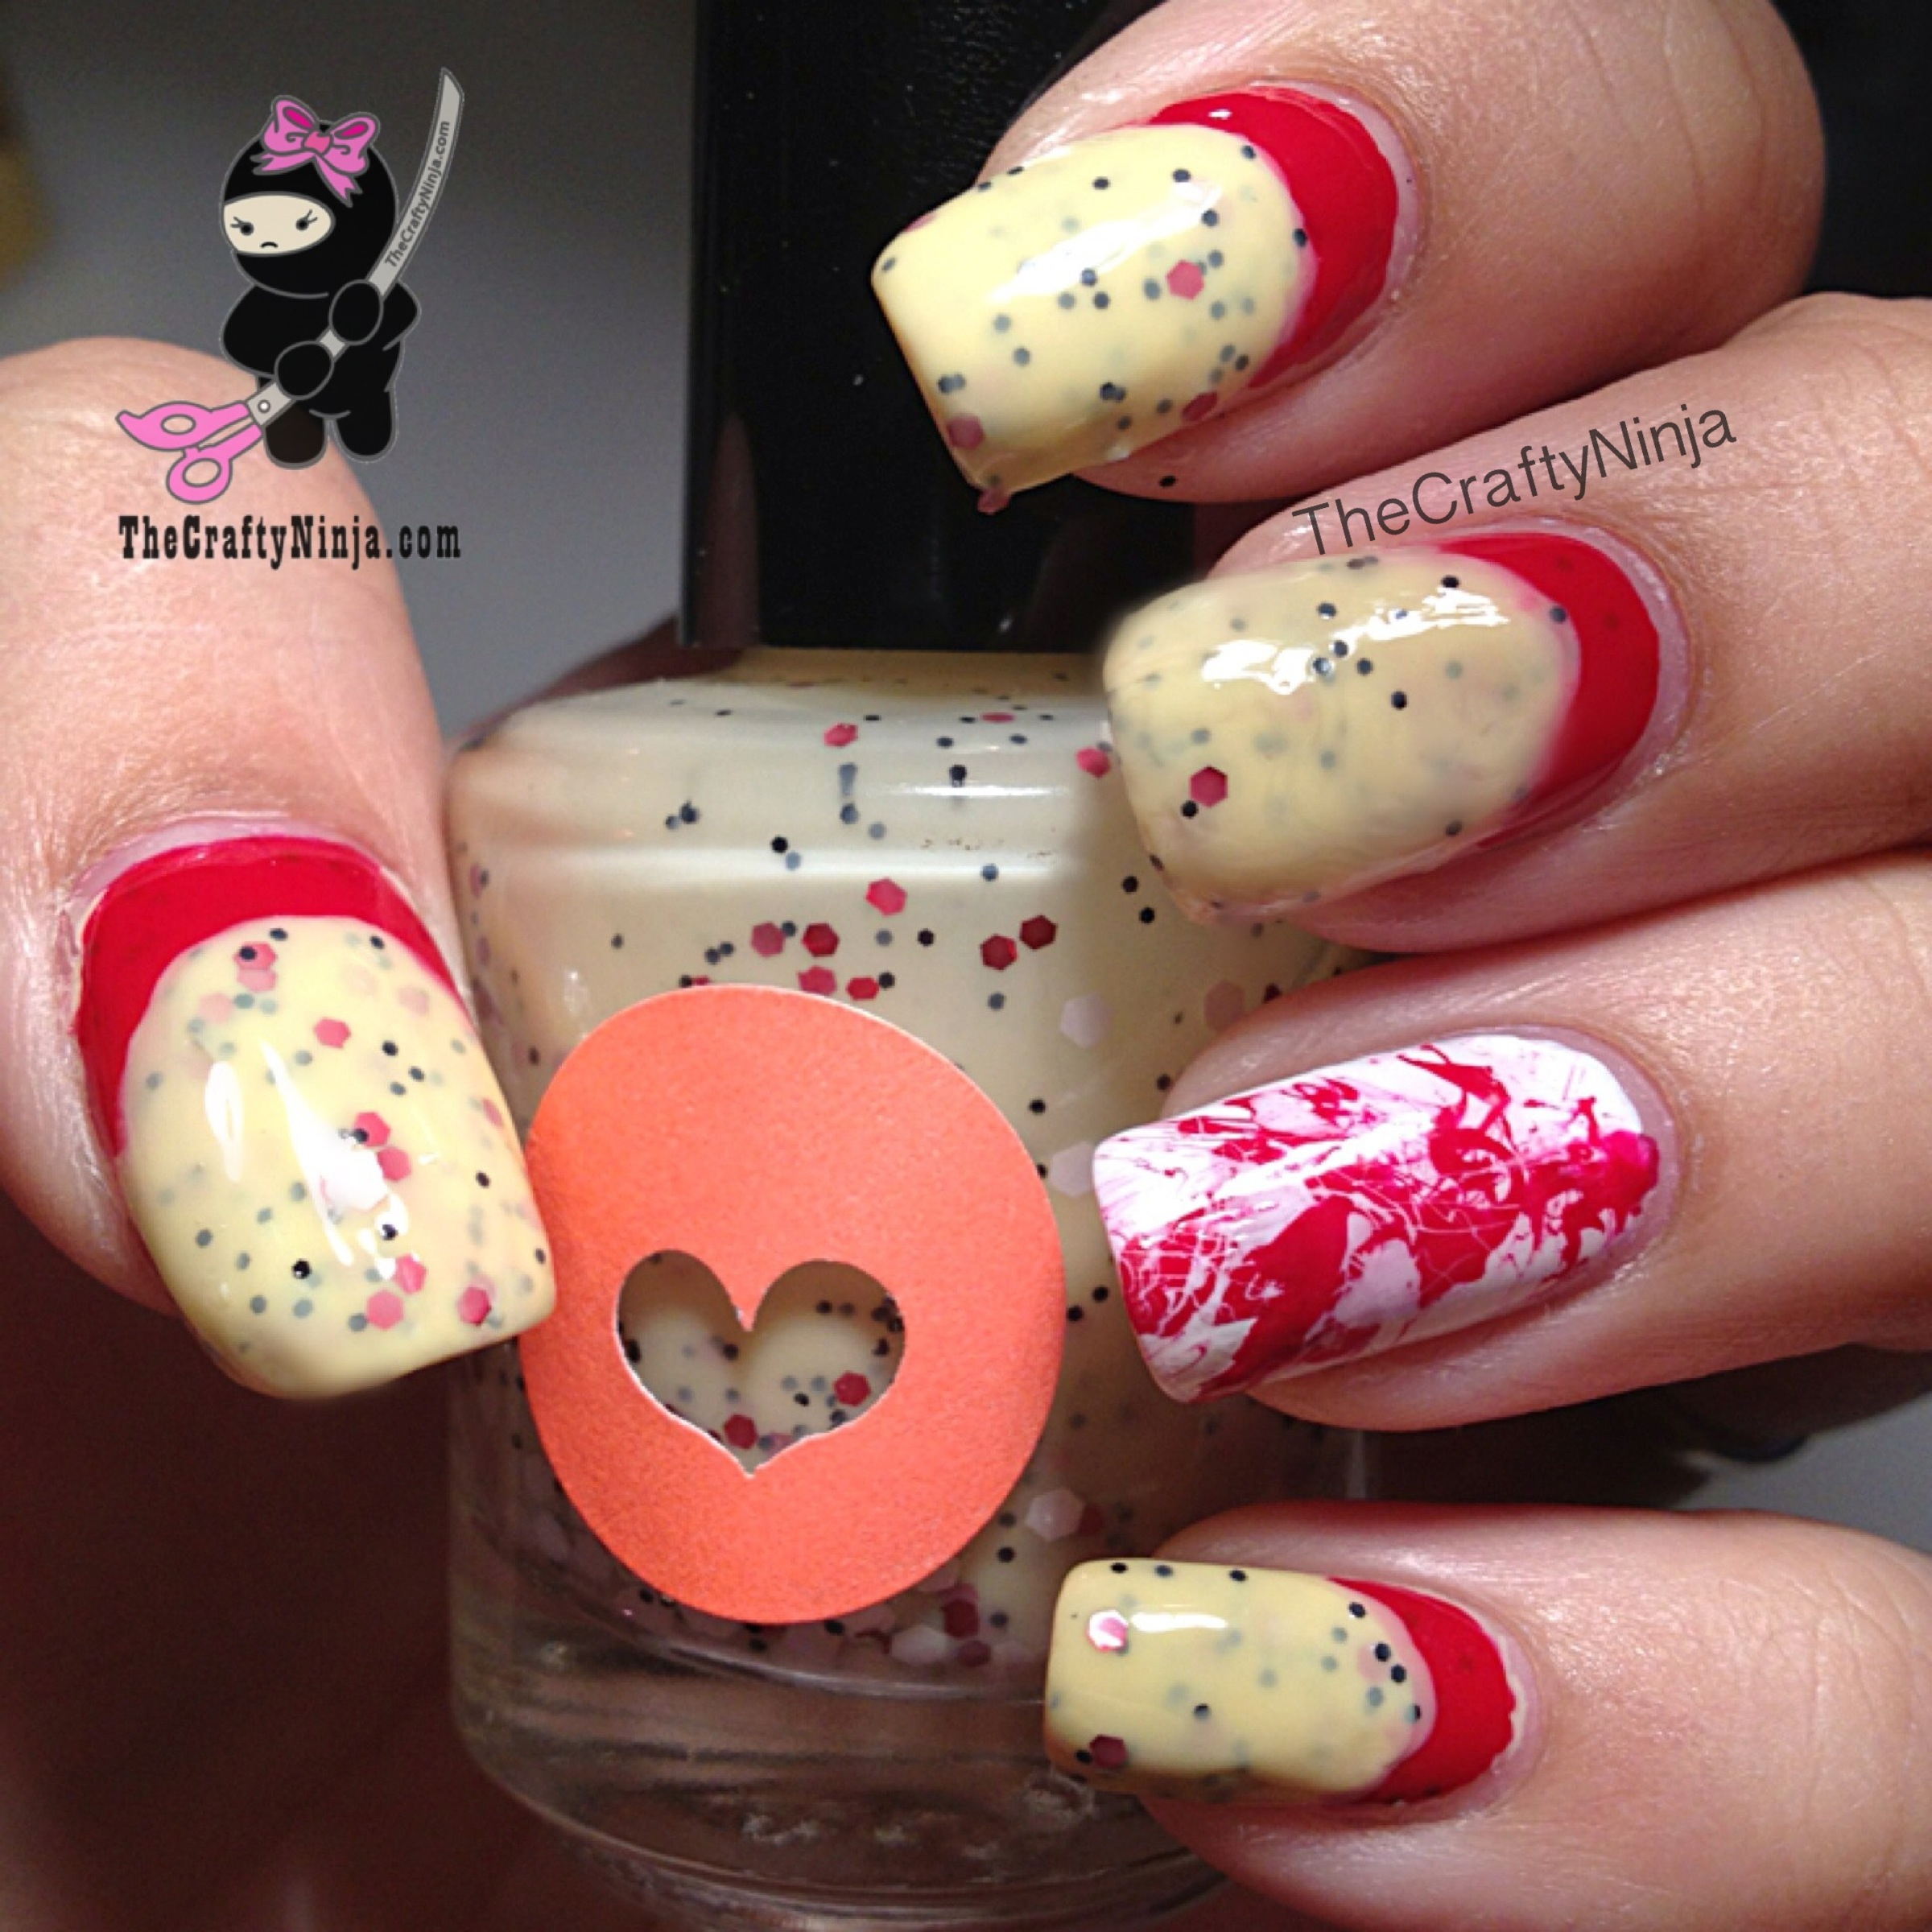 Nail art whitby choice image nail art and nail design ideas nail art fort oglethorpe hours images nail art and nail design ideas nail art whitby hours prinsesfo Choice Image